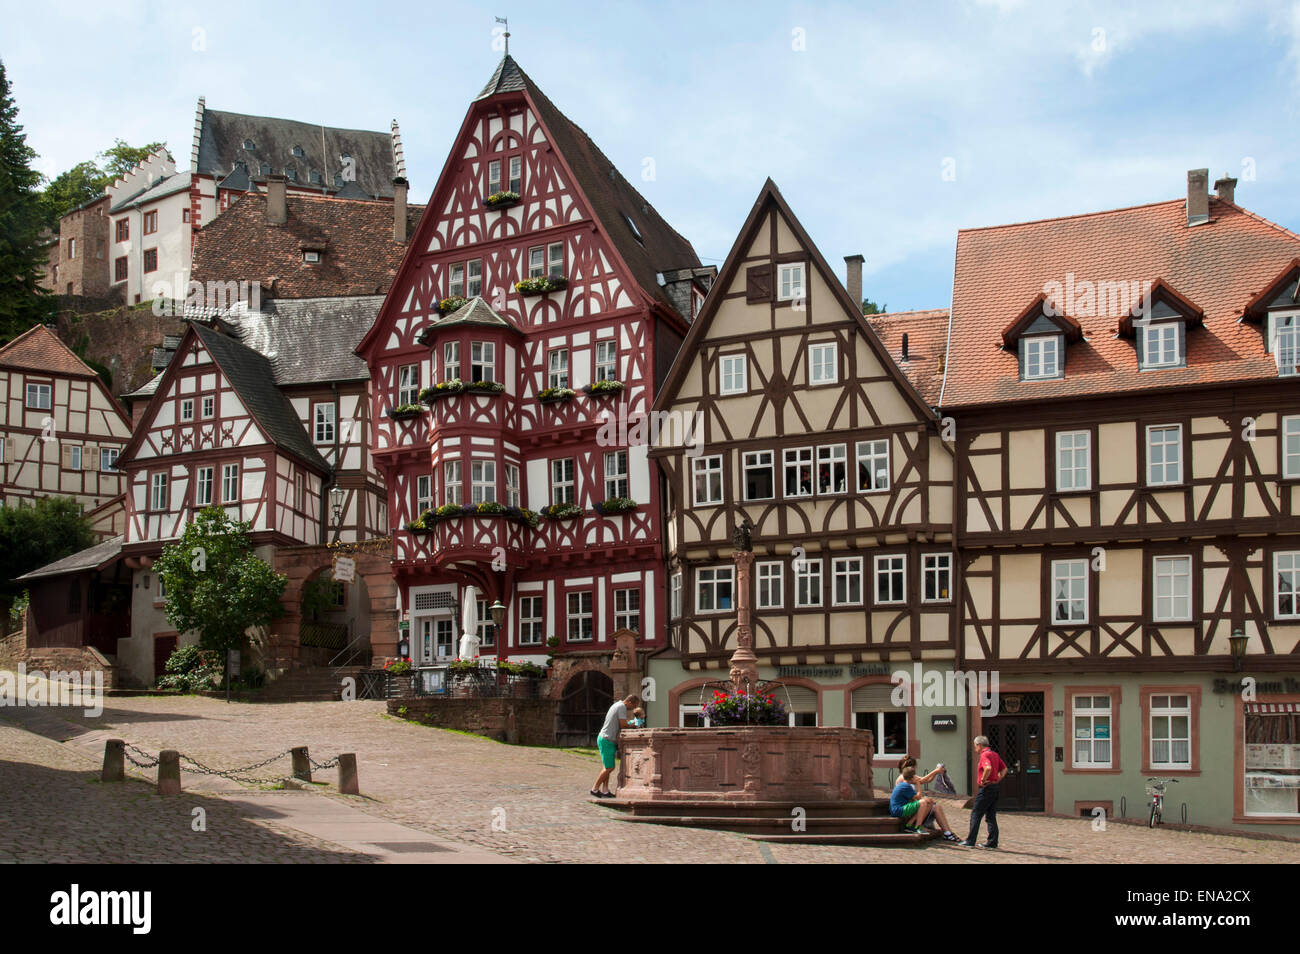 timber framed houses high street old town of miltenberg